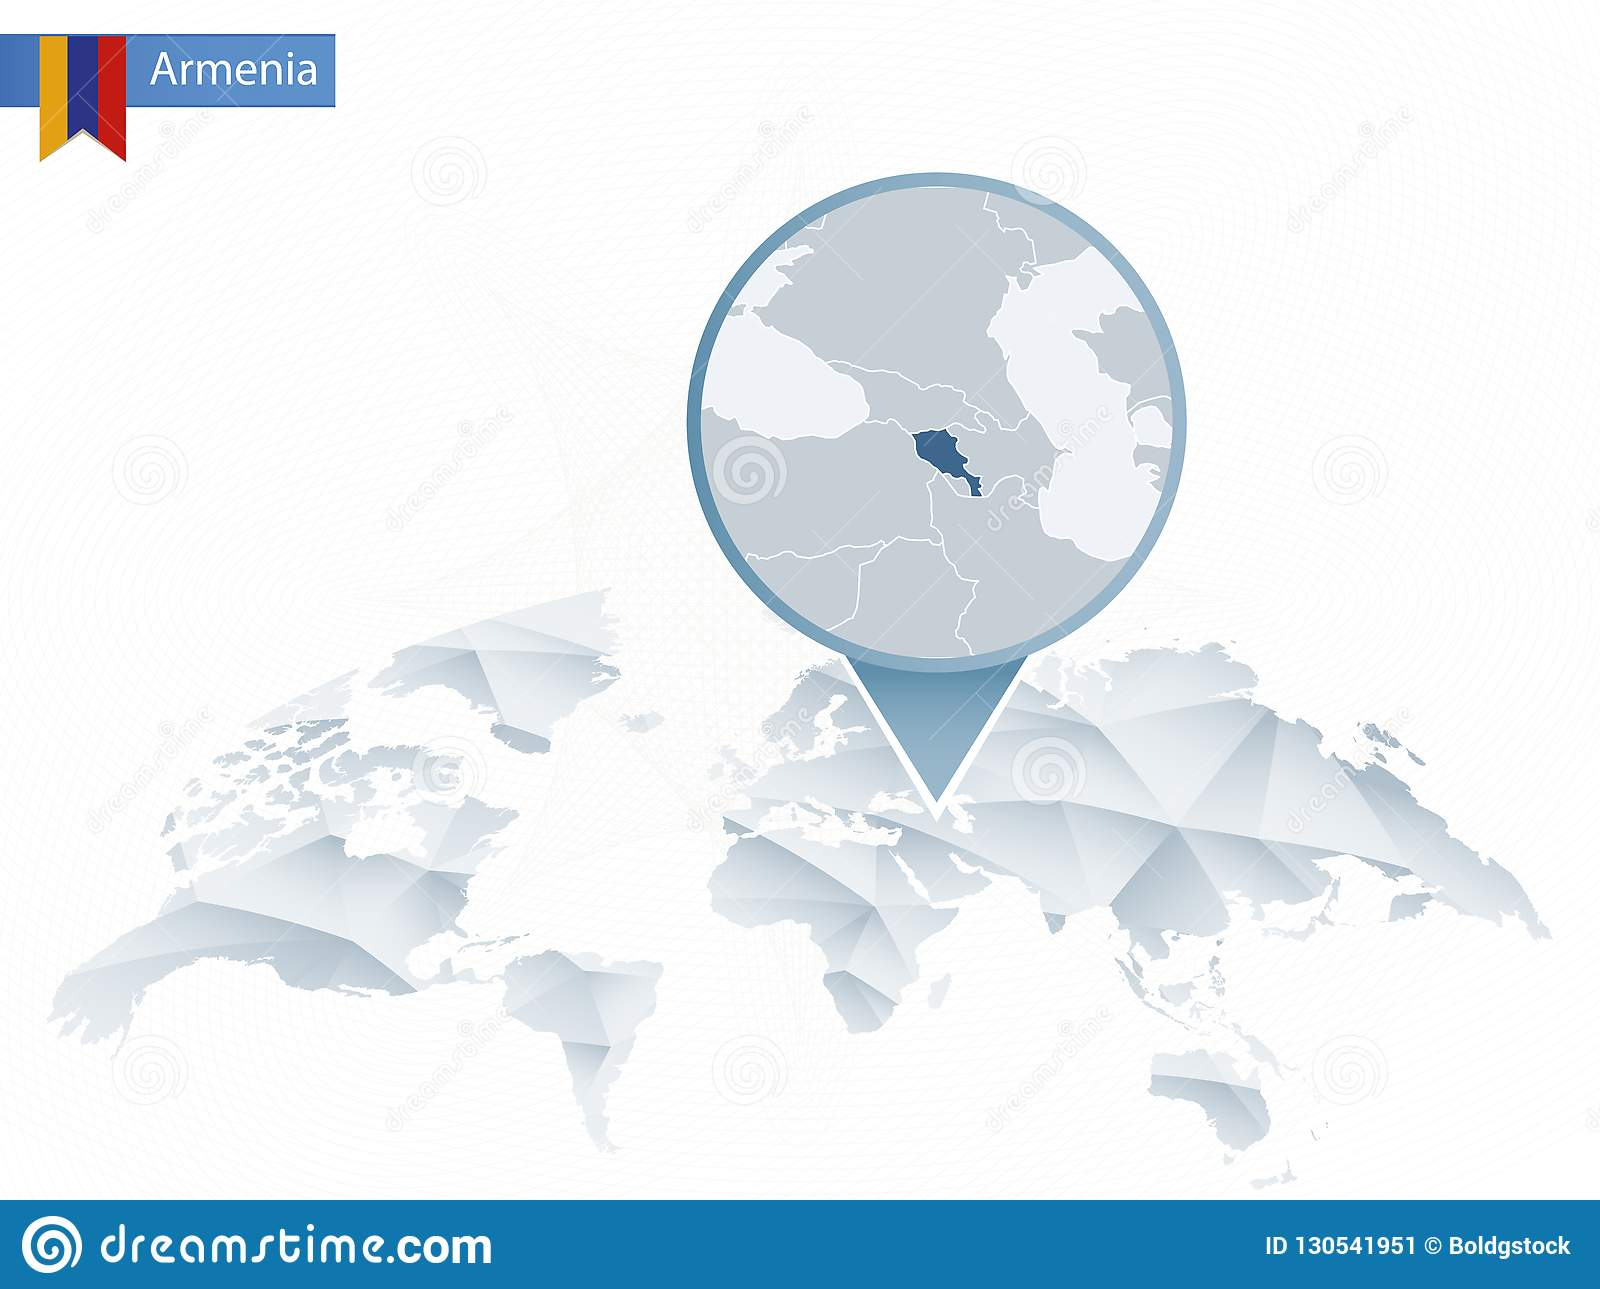 Abstract Rounded World Map With Pinned Detailed Armenia Map Stock